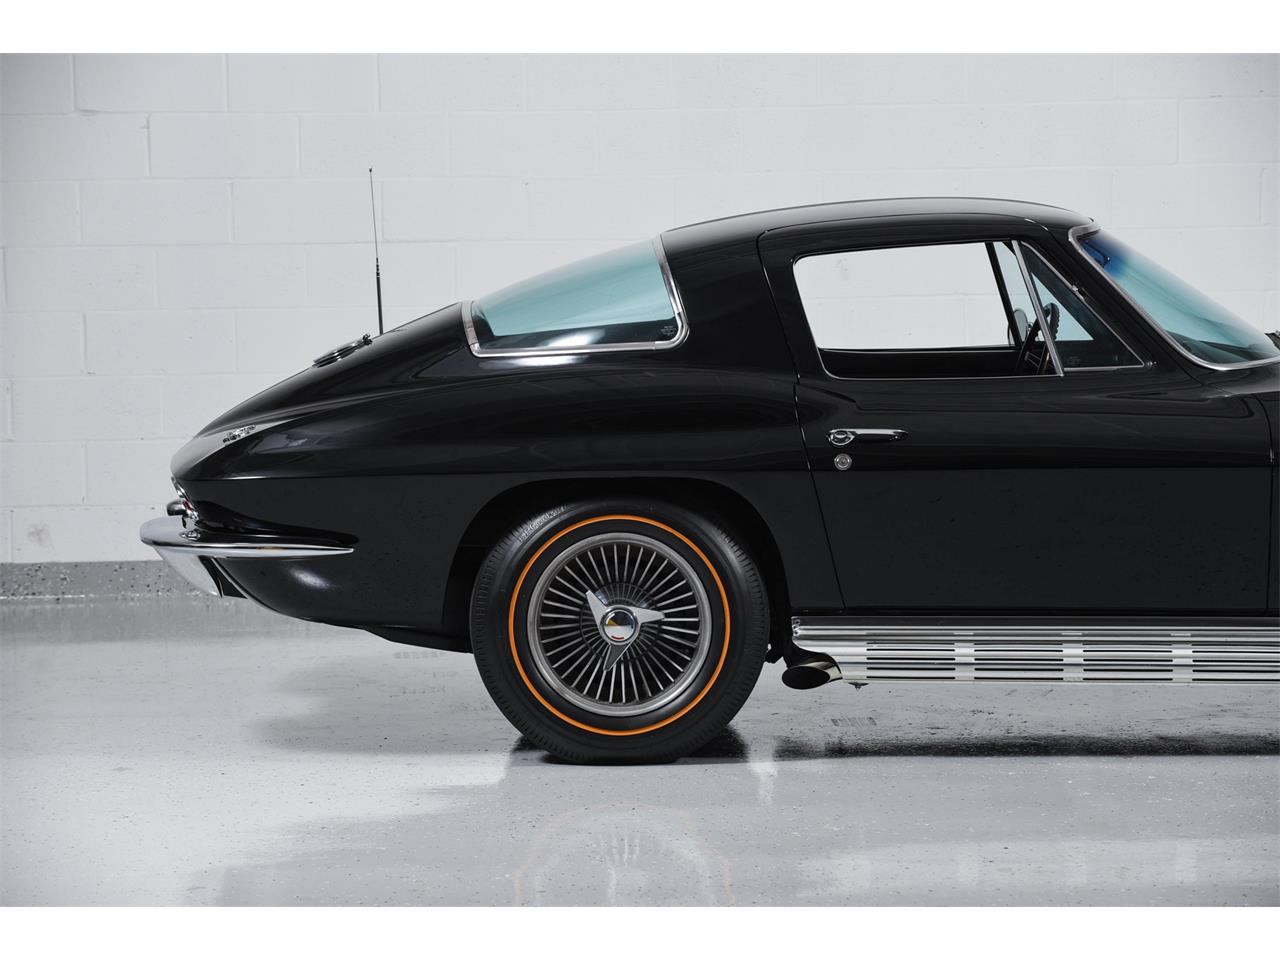 Large Picture of '66 Chevrolet Corvette located in Farmingdale New York - $79,900.00 - Q1WK